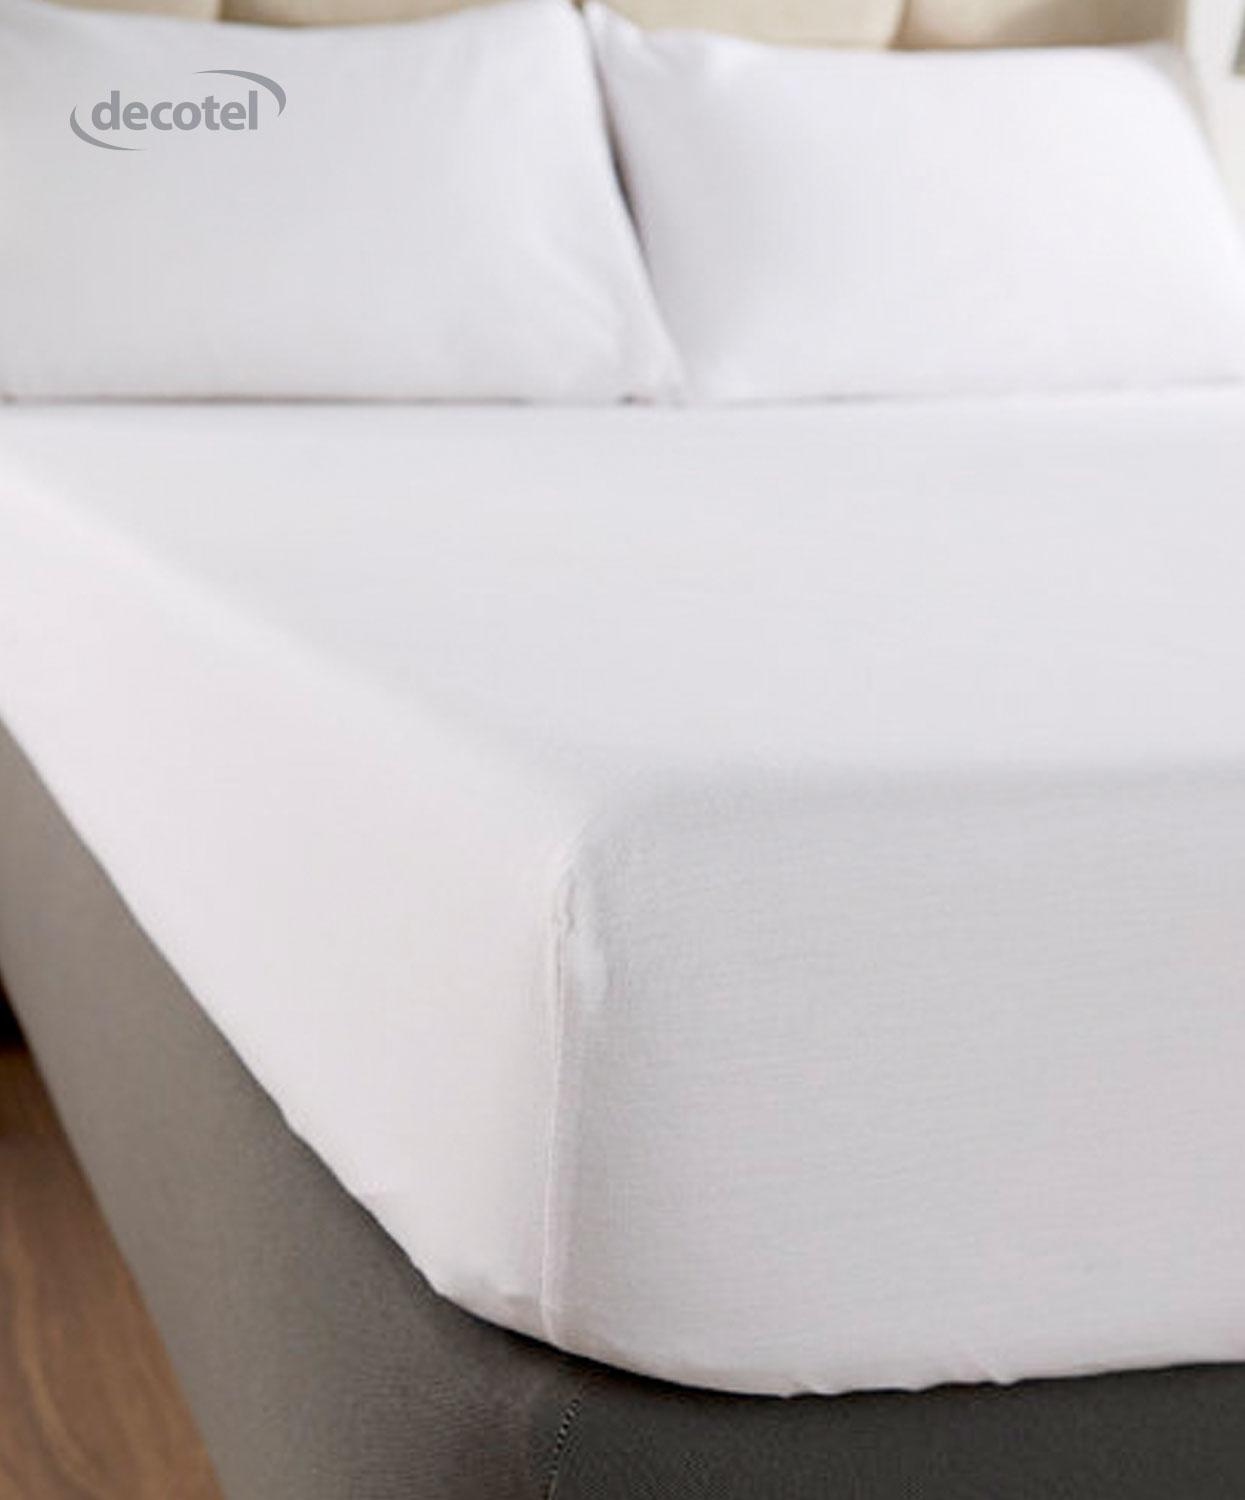 Flat bed sheets from Star Linen